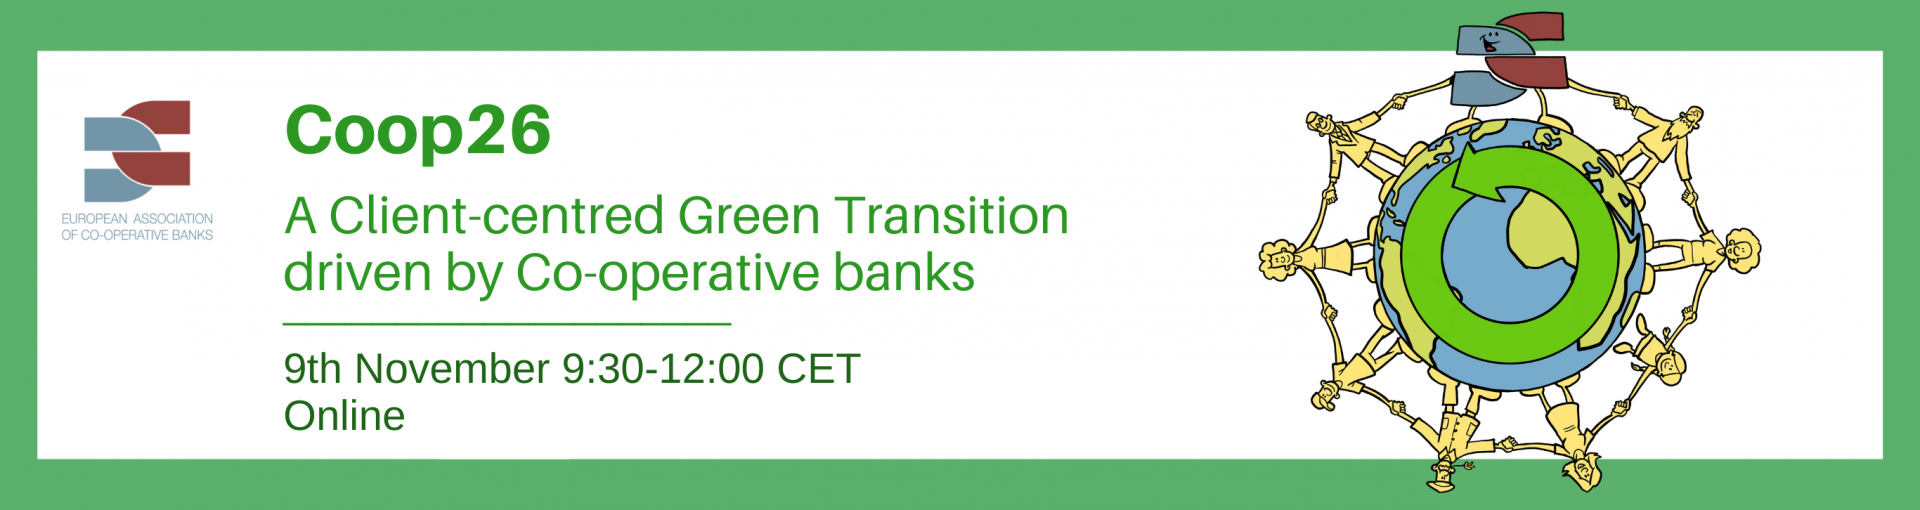 COOP26: A Client-Centered Green Transition driven by Co-operative Banks